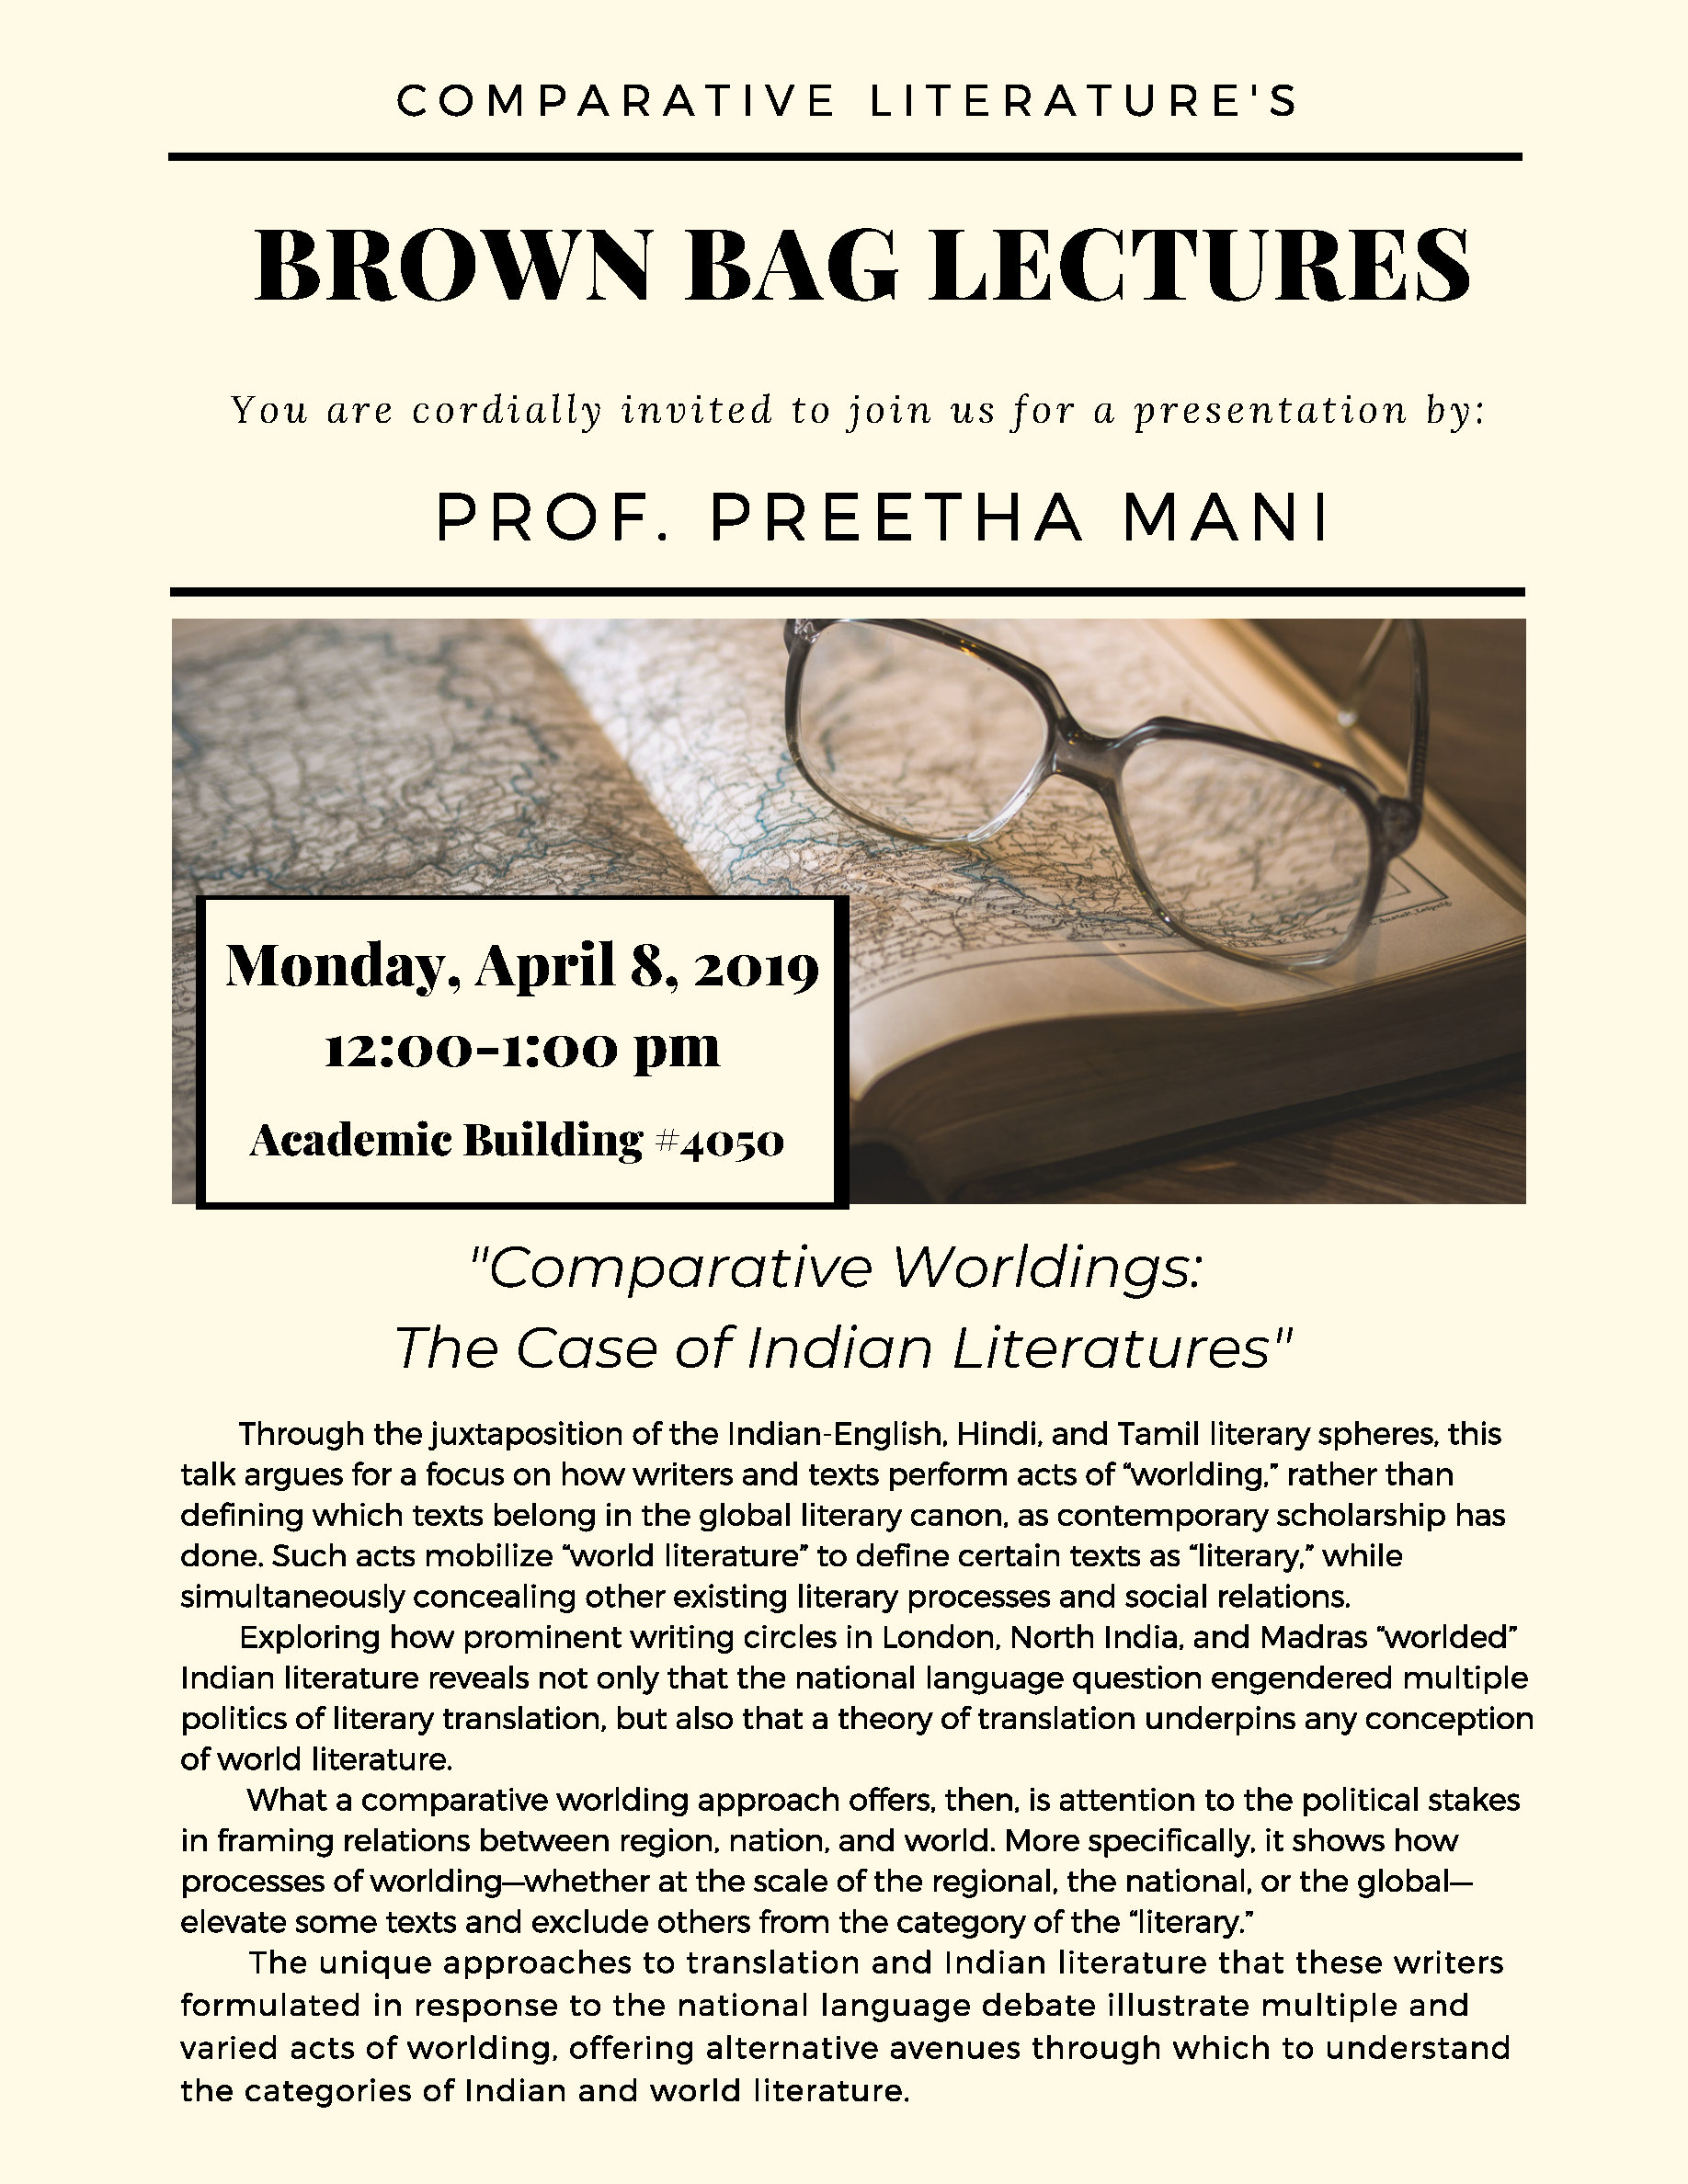 April_8_CL_Mani_Brown_Bag_Lecture.jpg